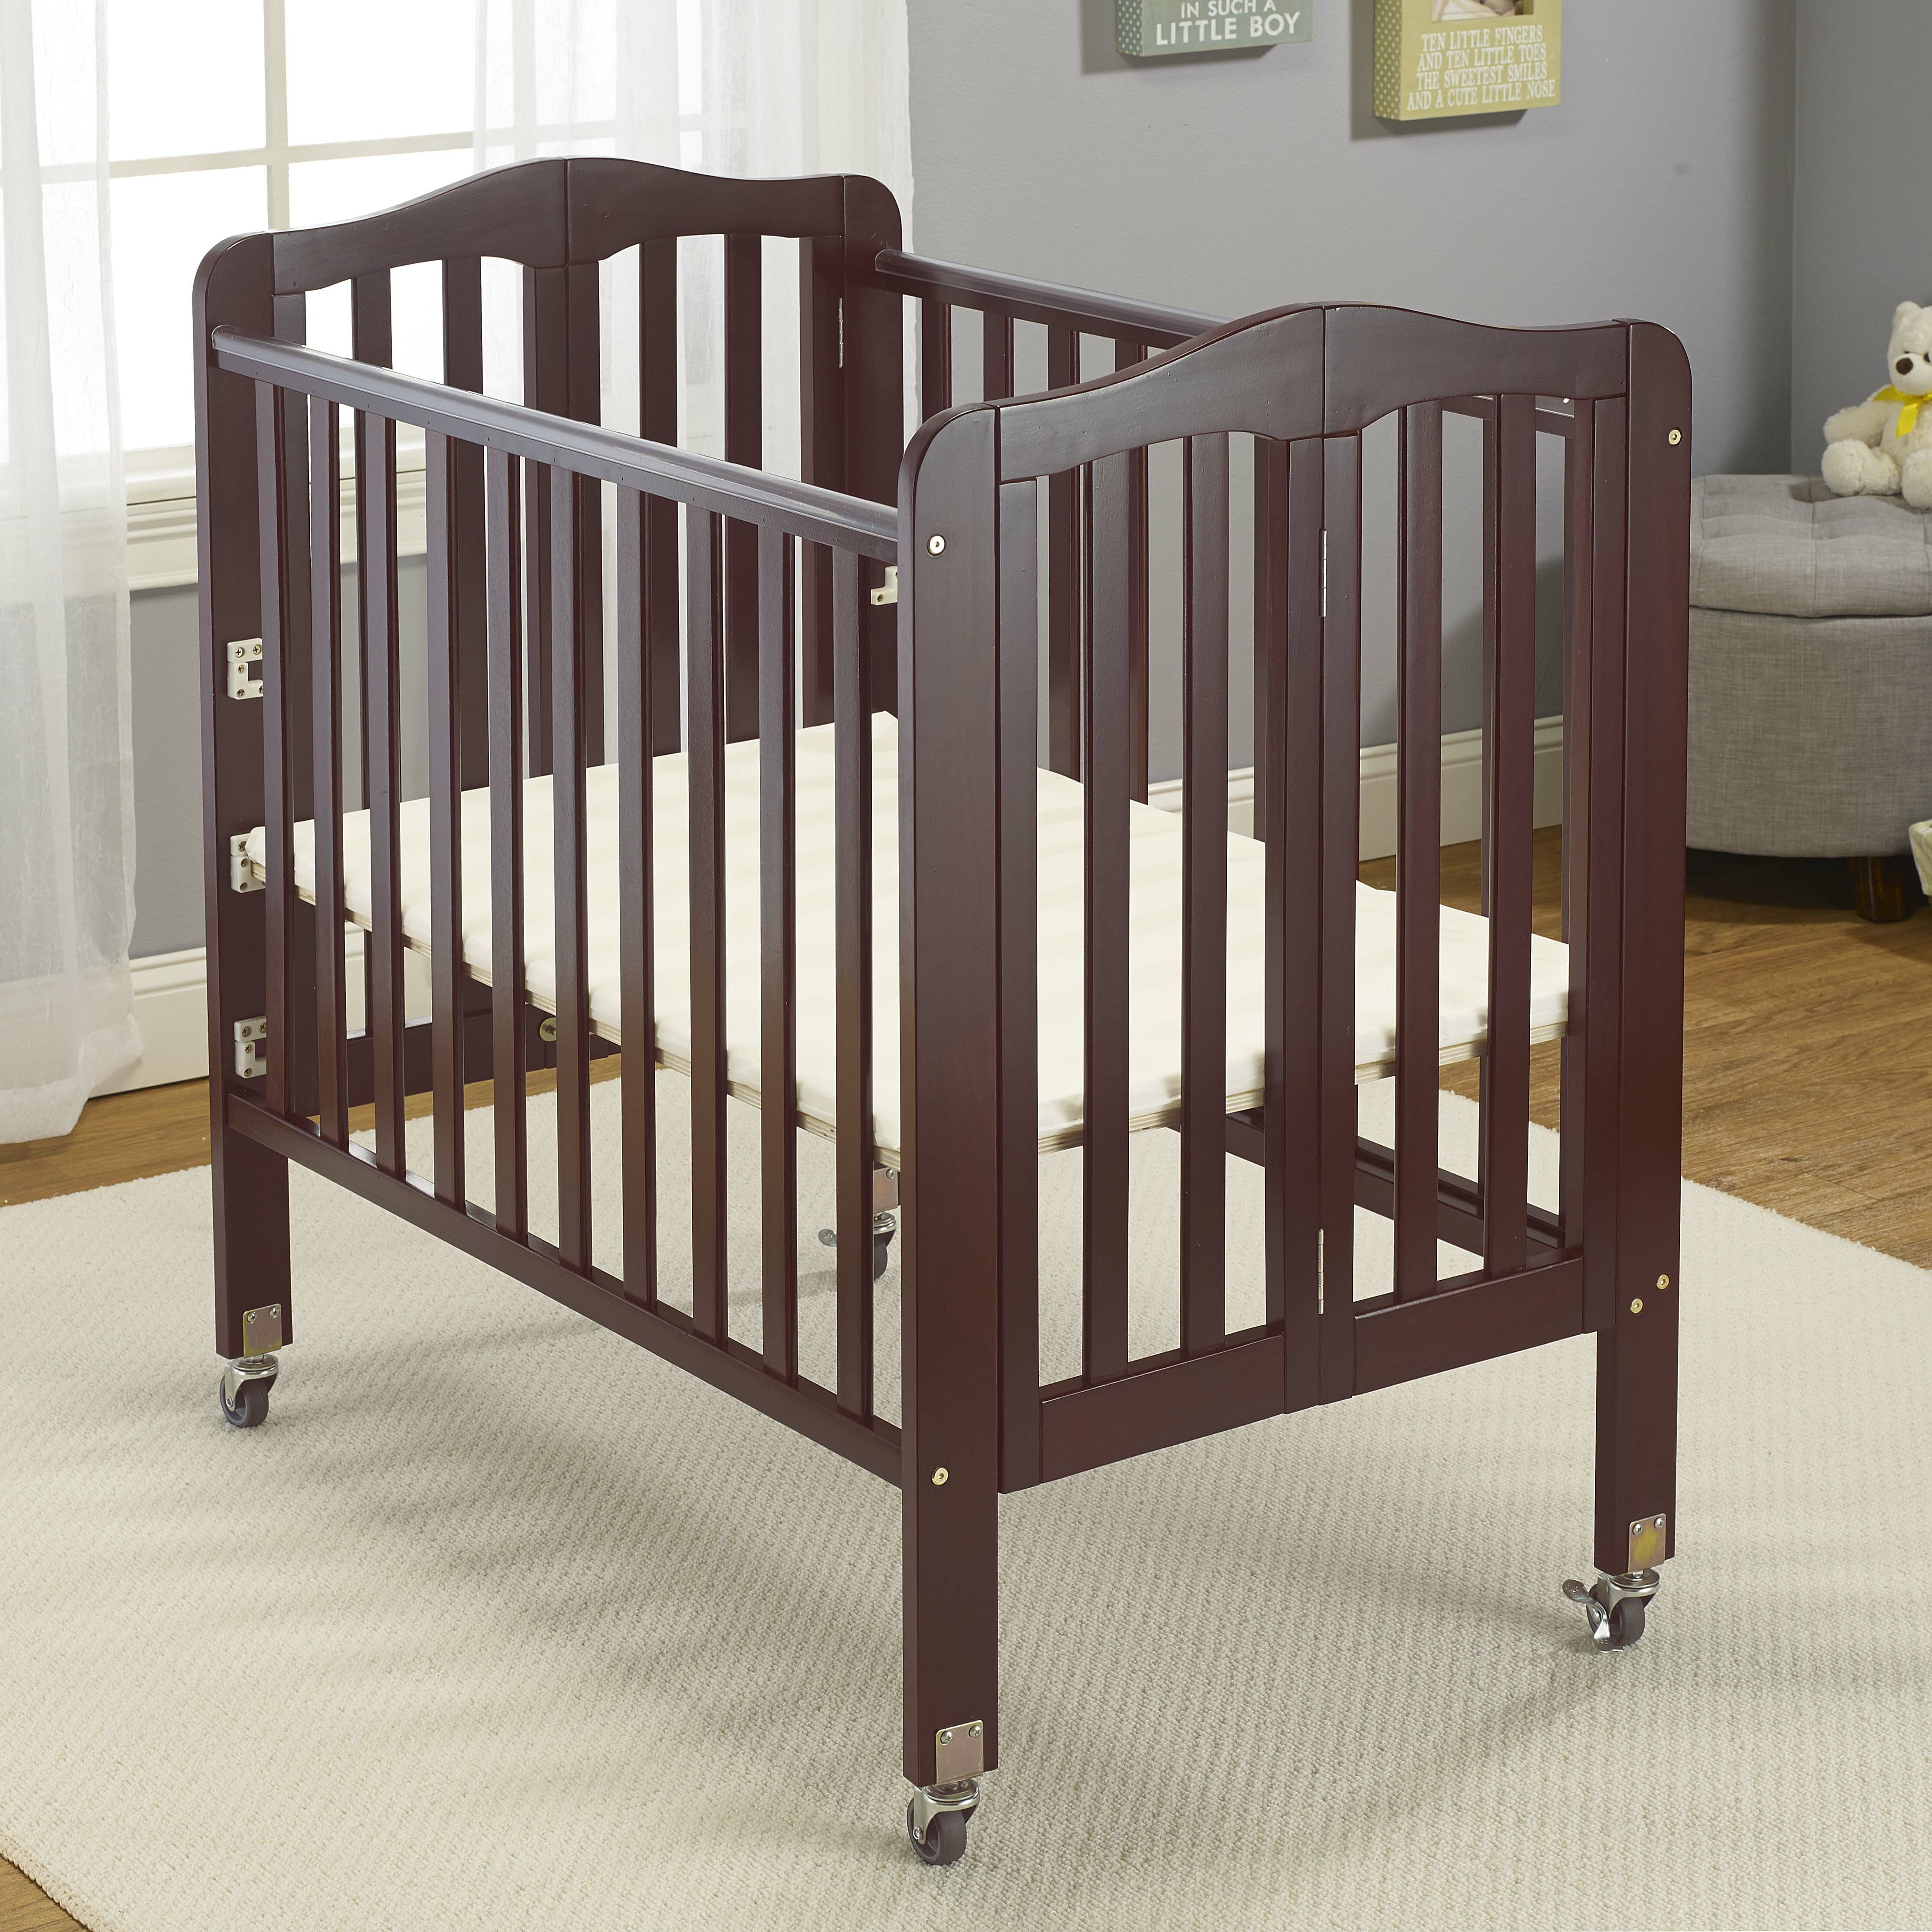 Best crib for baby - Best Position For Baby In Crib Baby Time International Inc Big Oshi Angela 3 Position